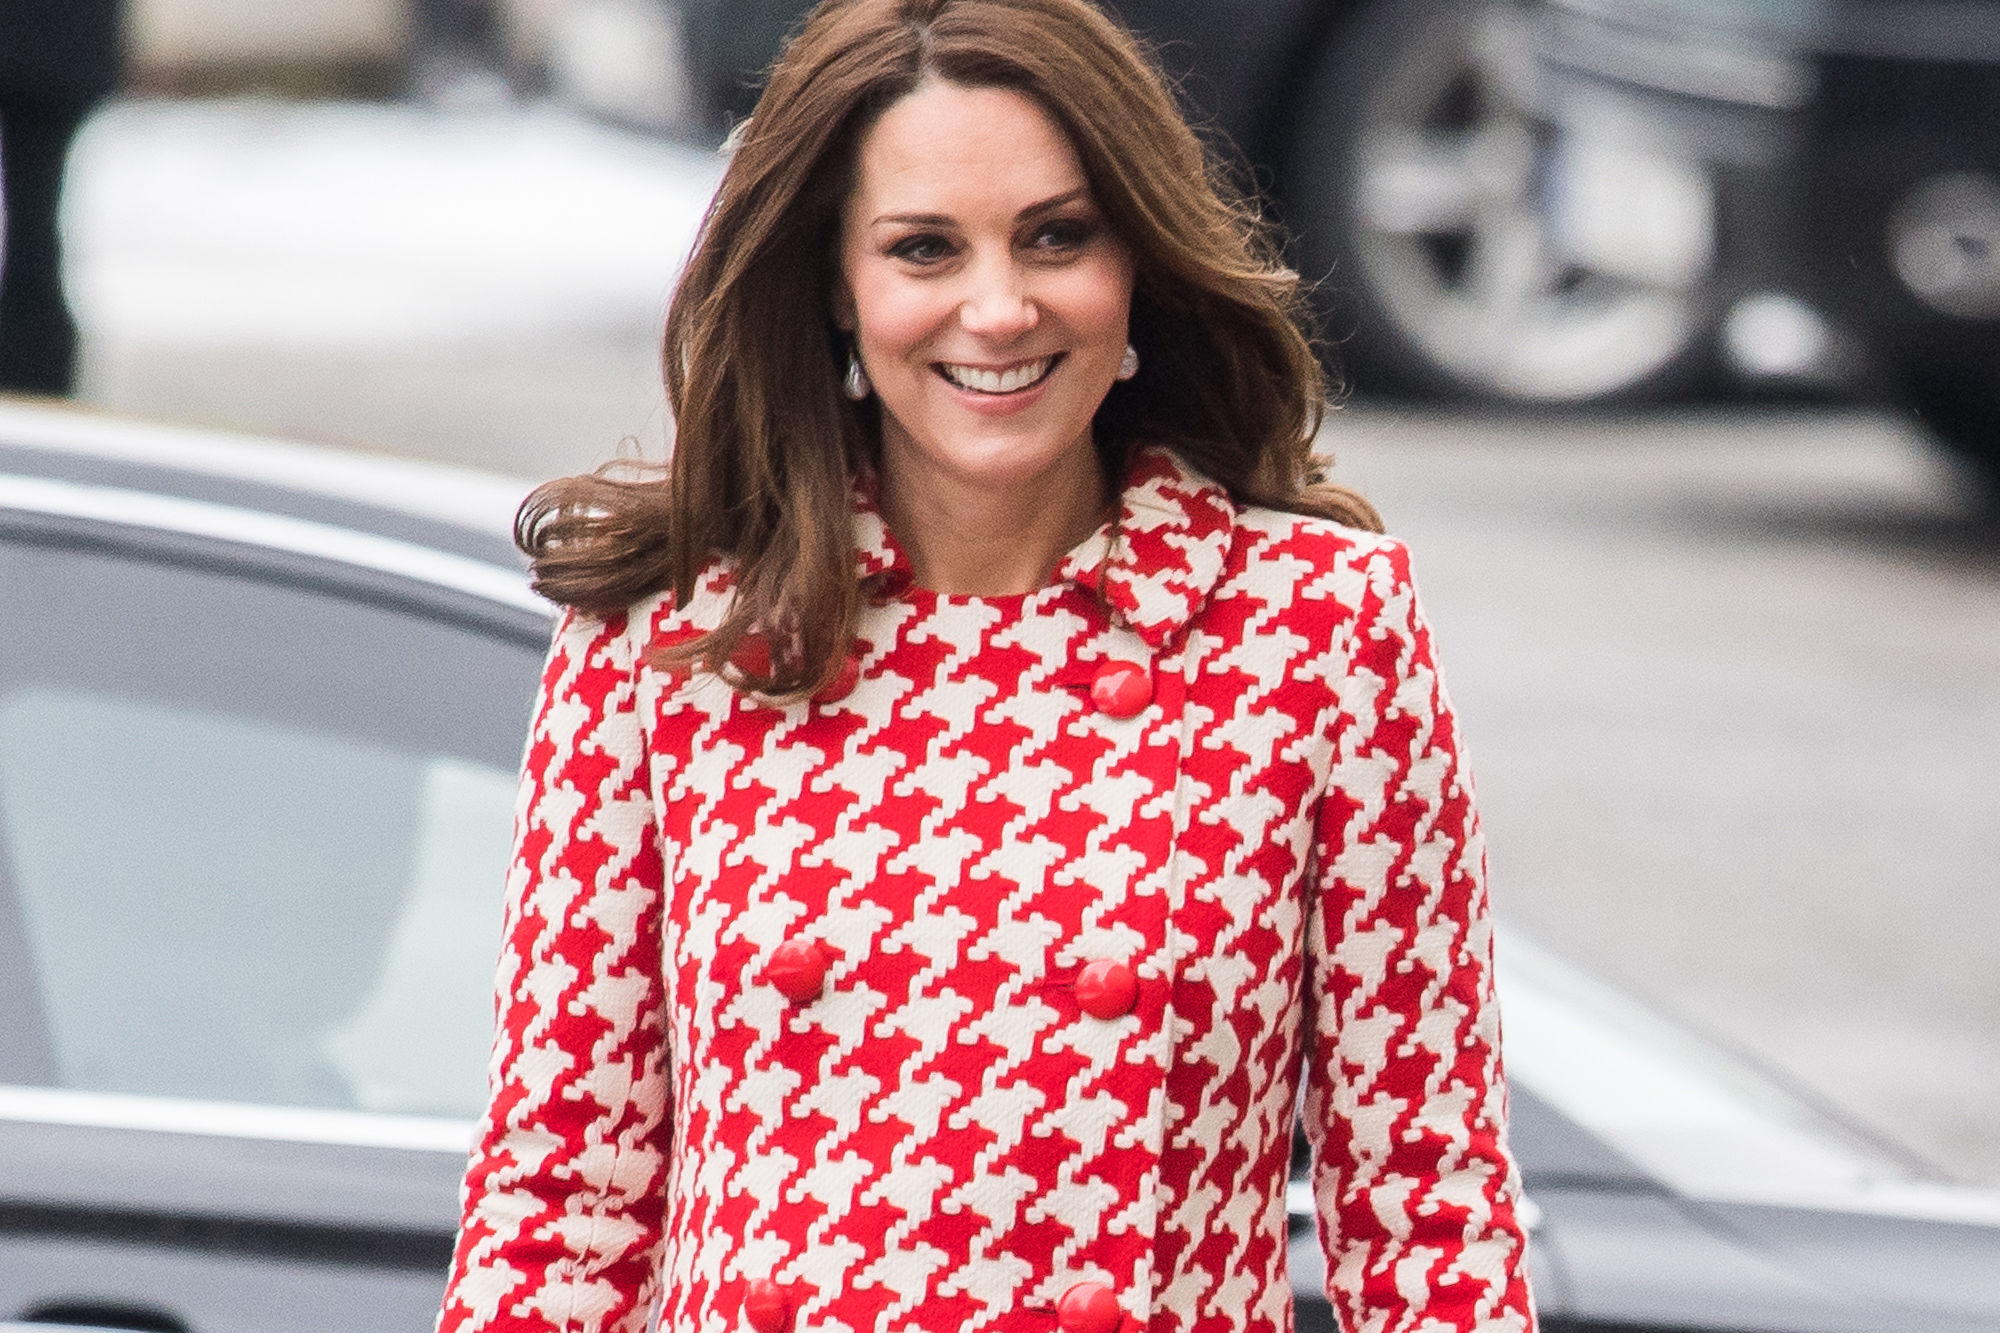 Kate Middleton Details Her College Days as a Photography Student in a Rare Letter